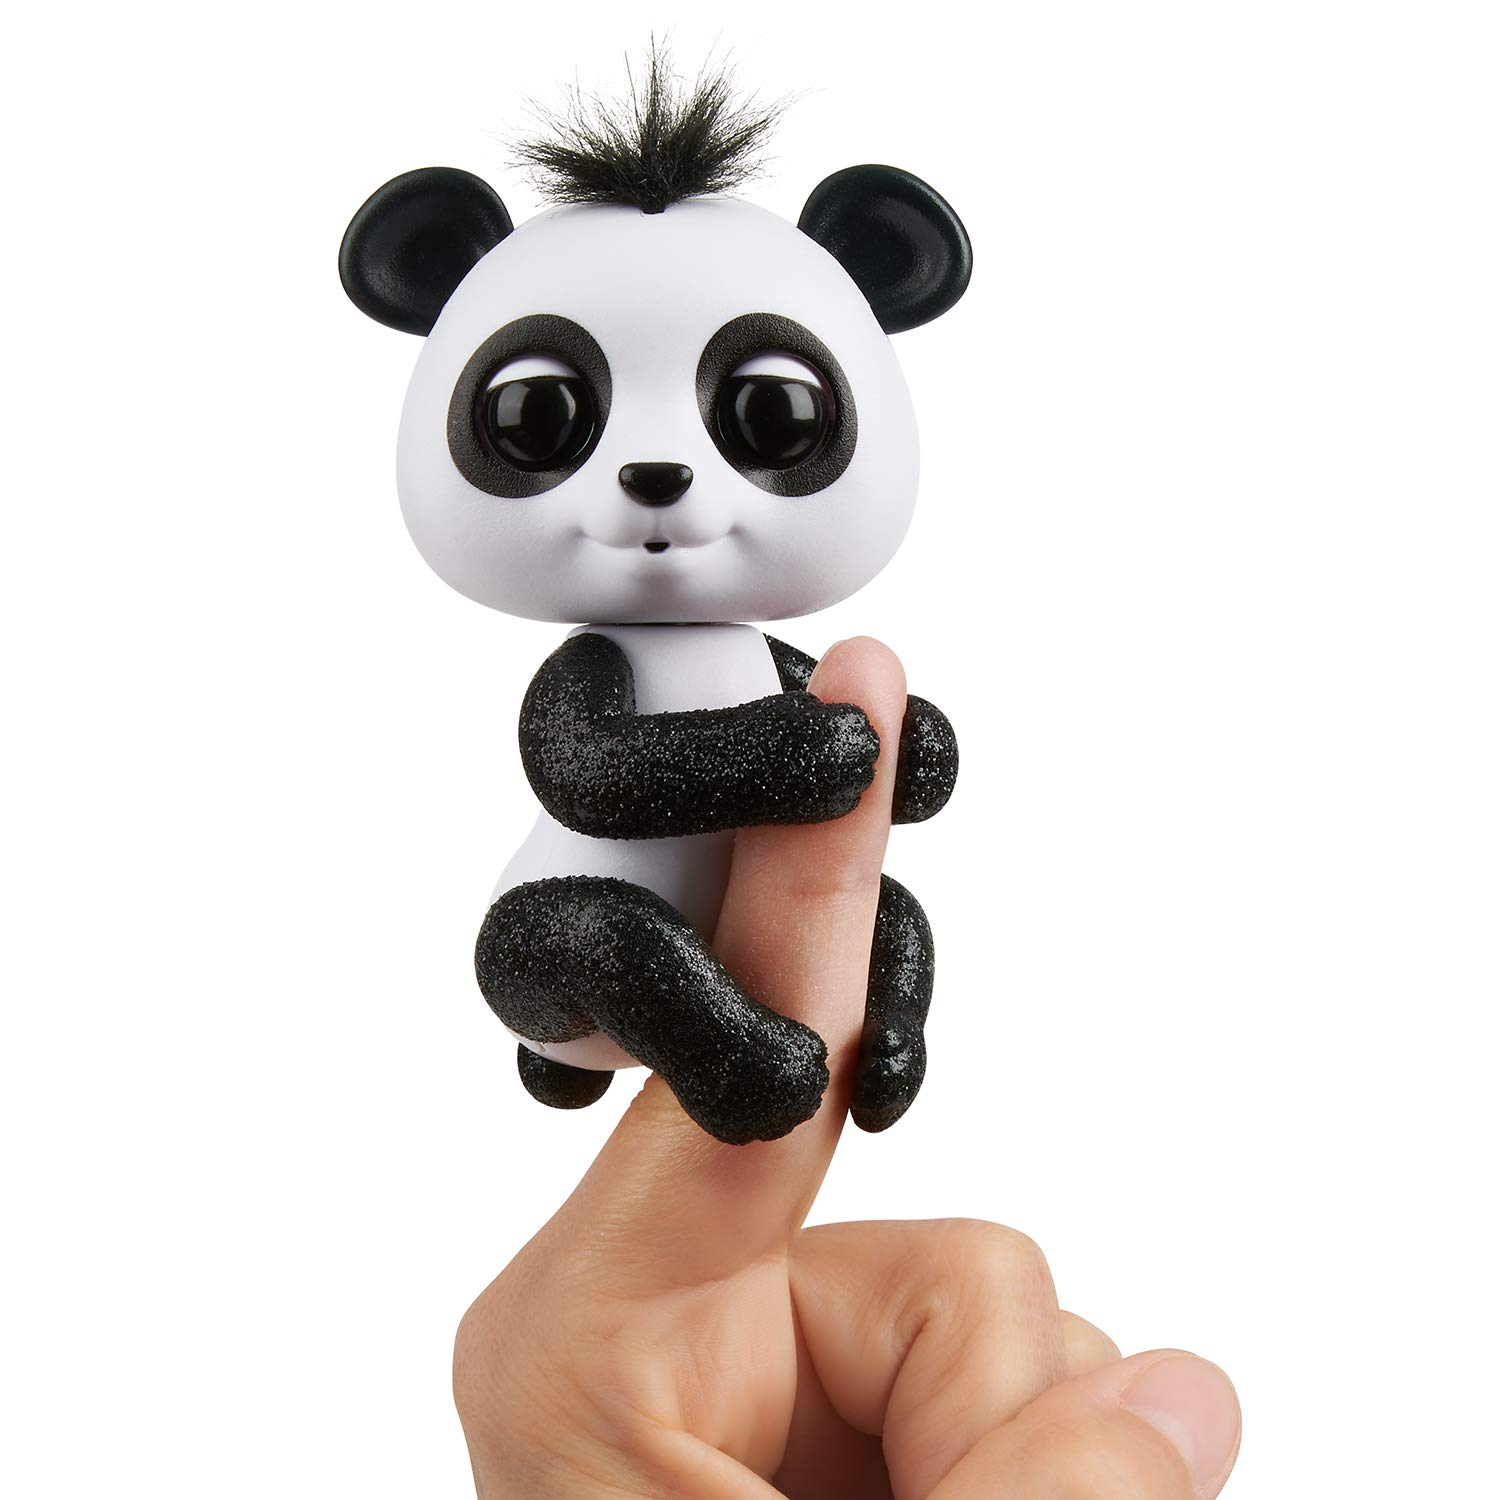 WowWee Fingerlings Glitter Panda - Drew (White & Black) - Interactive Collectible Baby Pet 3564